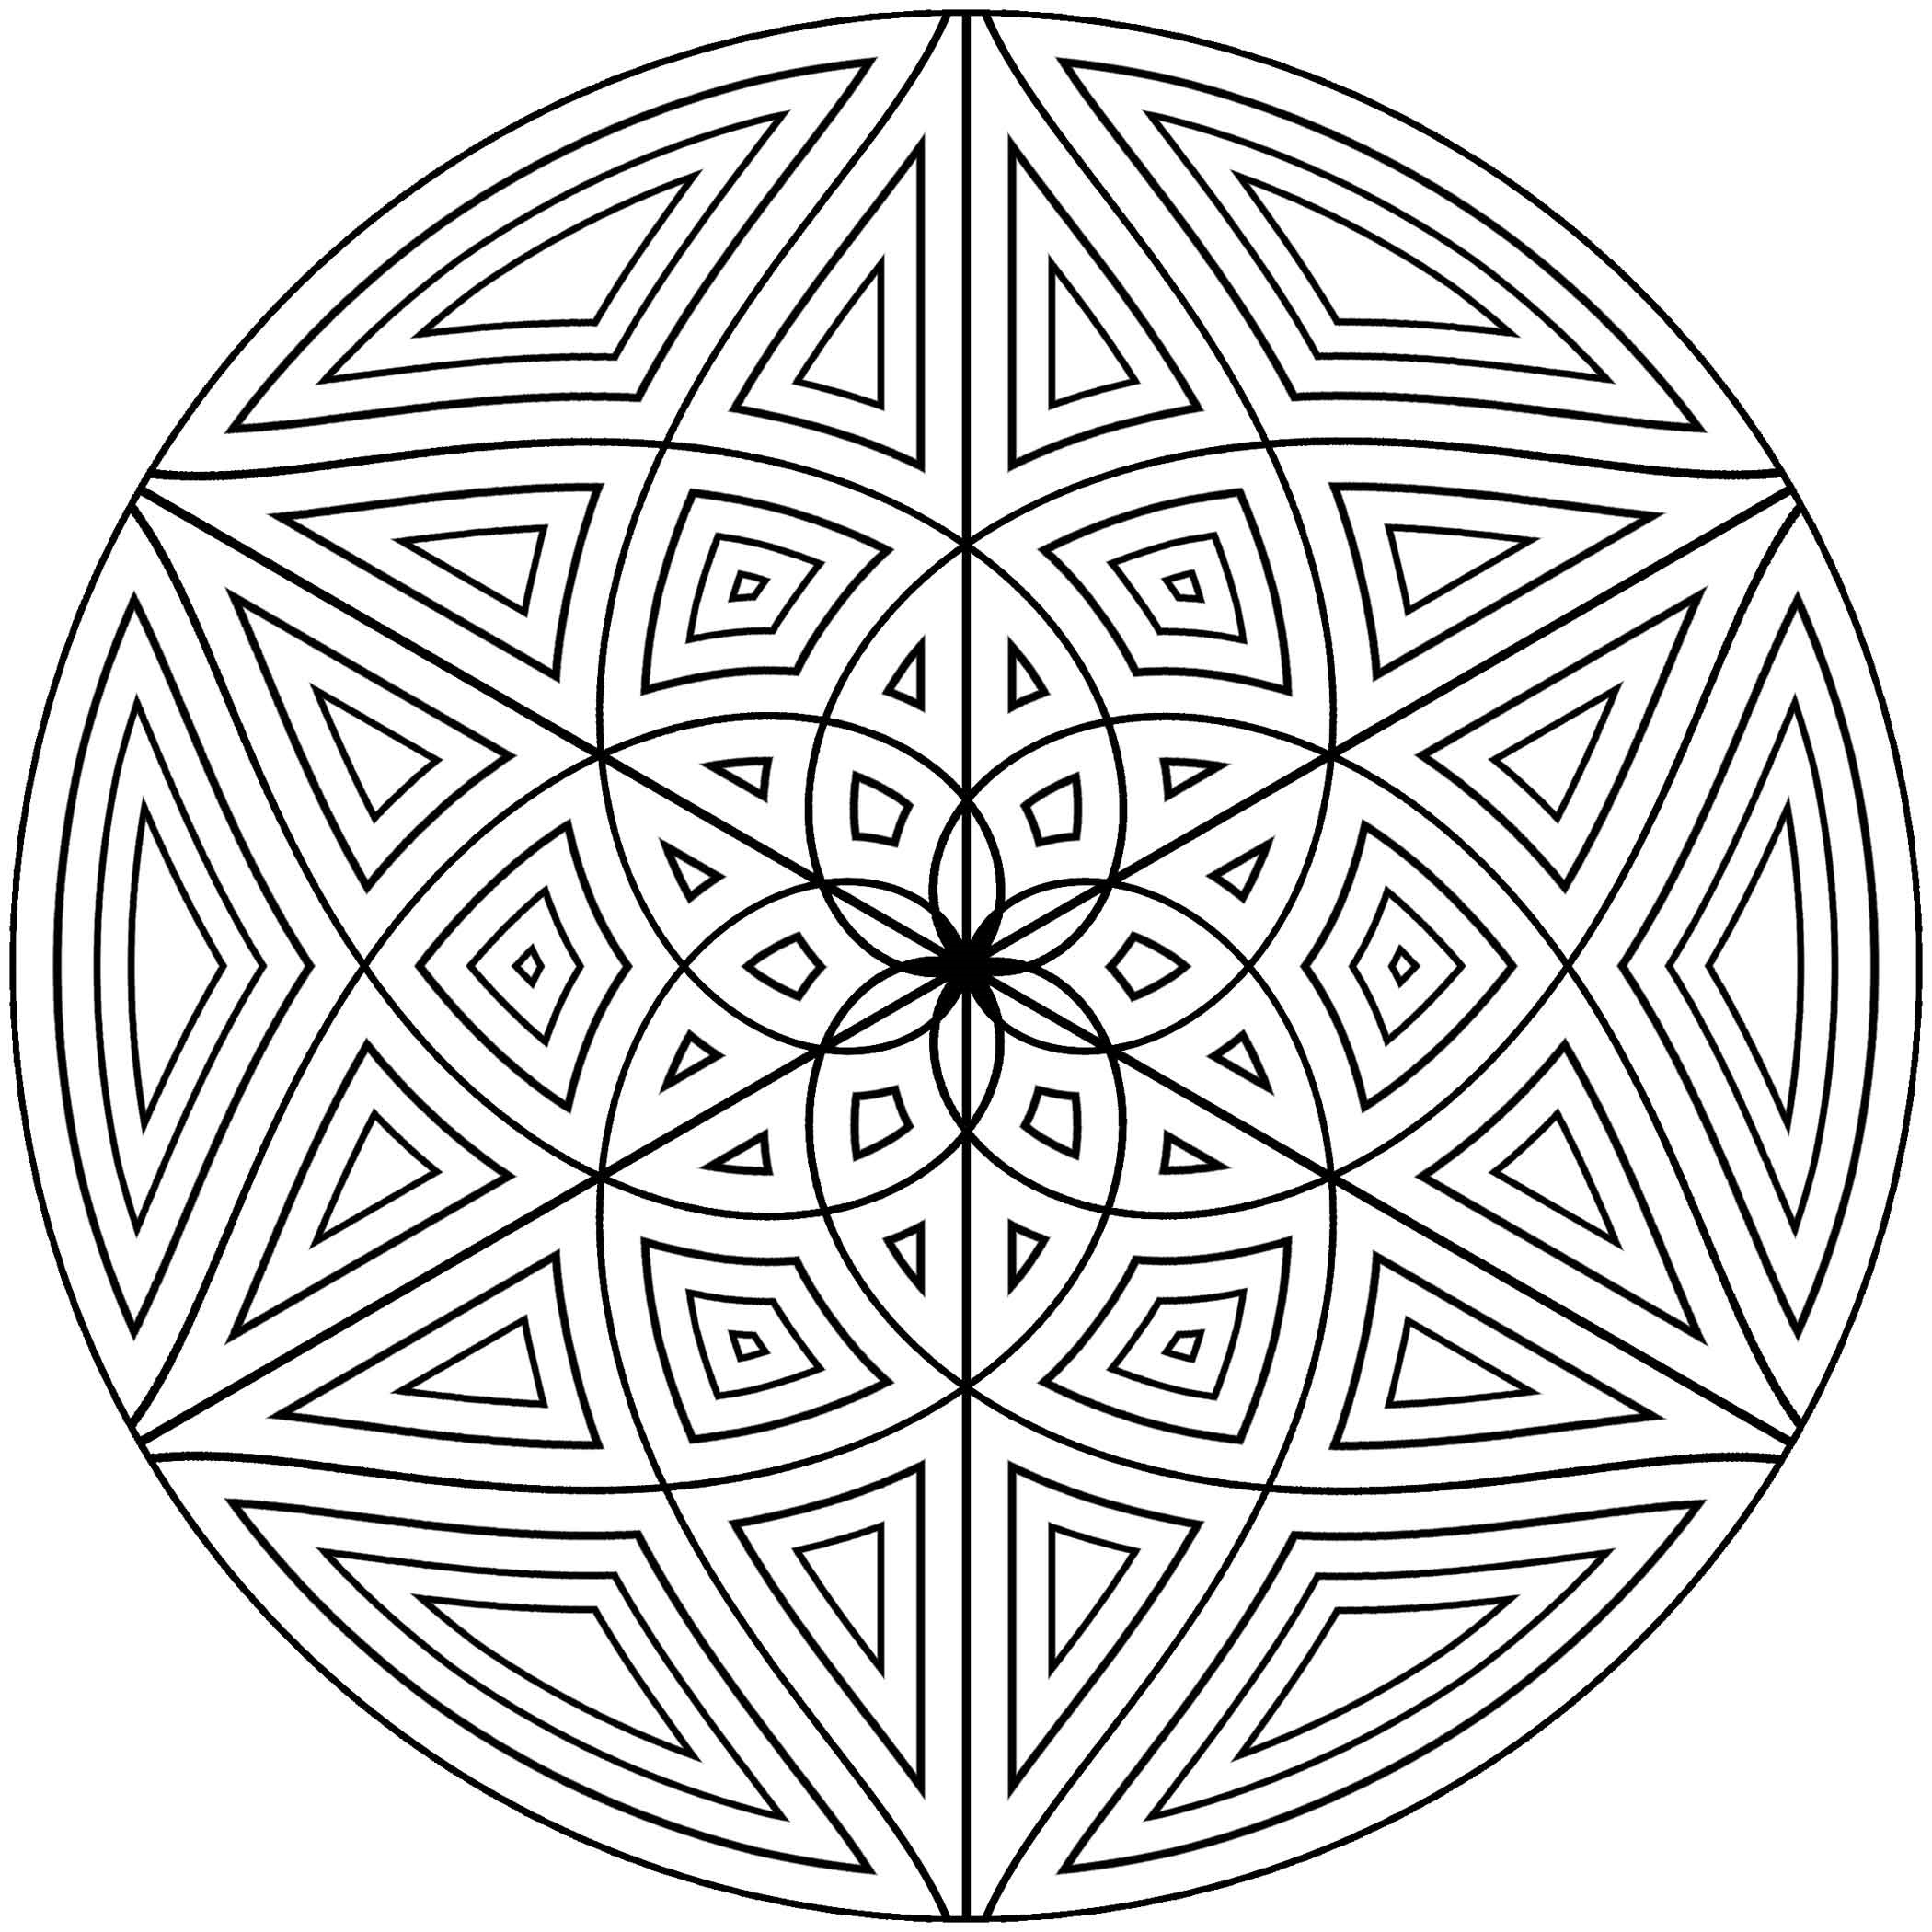 pattern coloring pages for adults colouring page patterns williamhannahuk colouring pages adults for coloring pattern